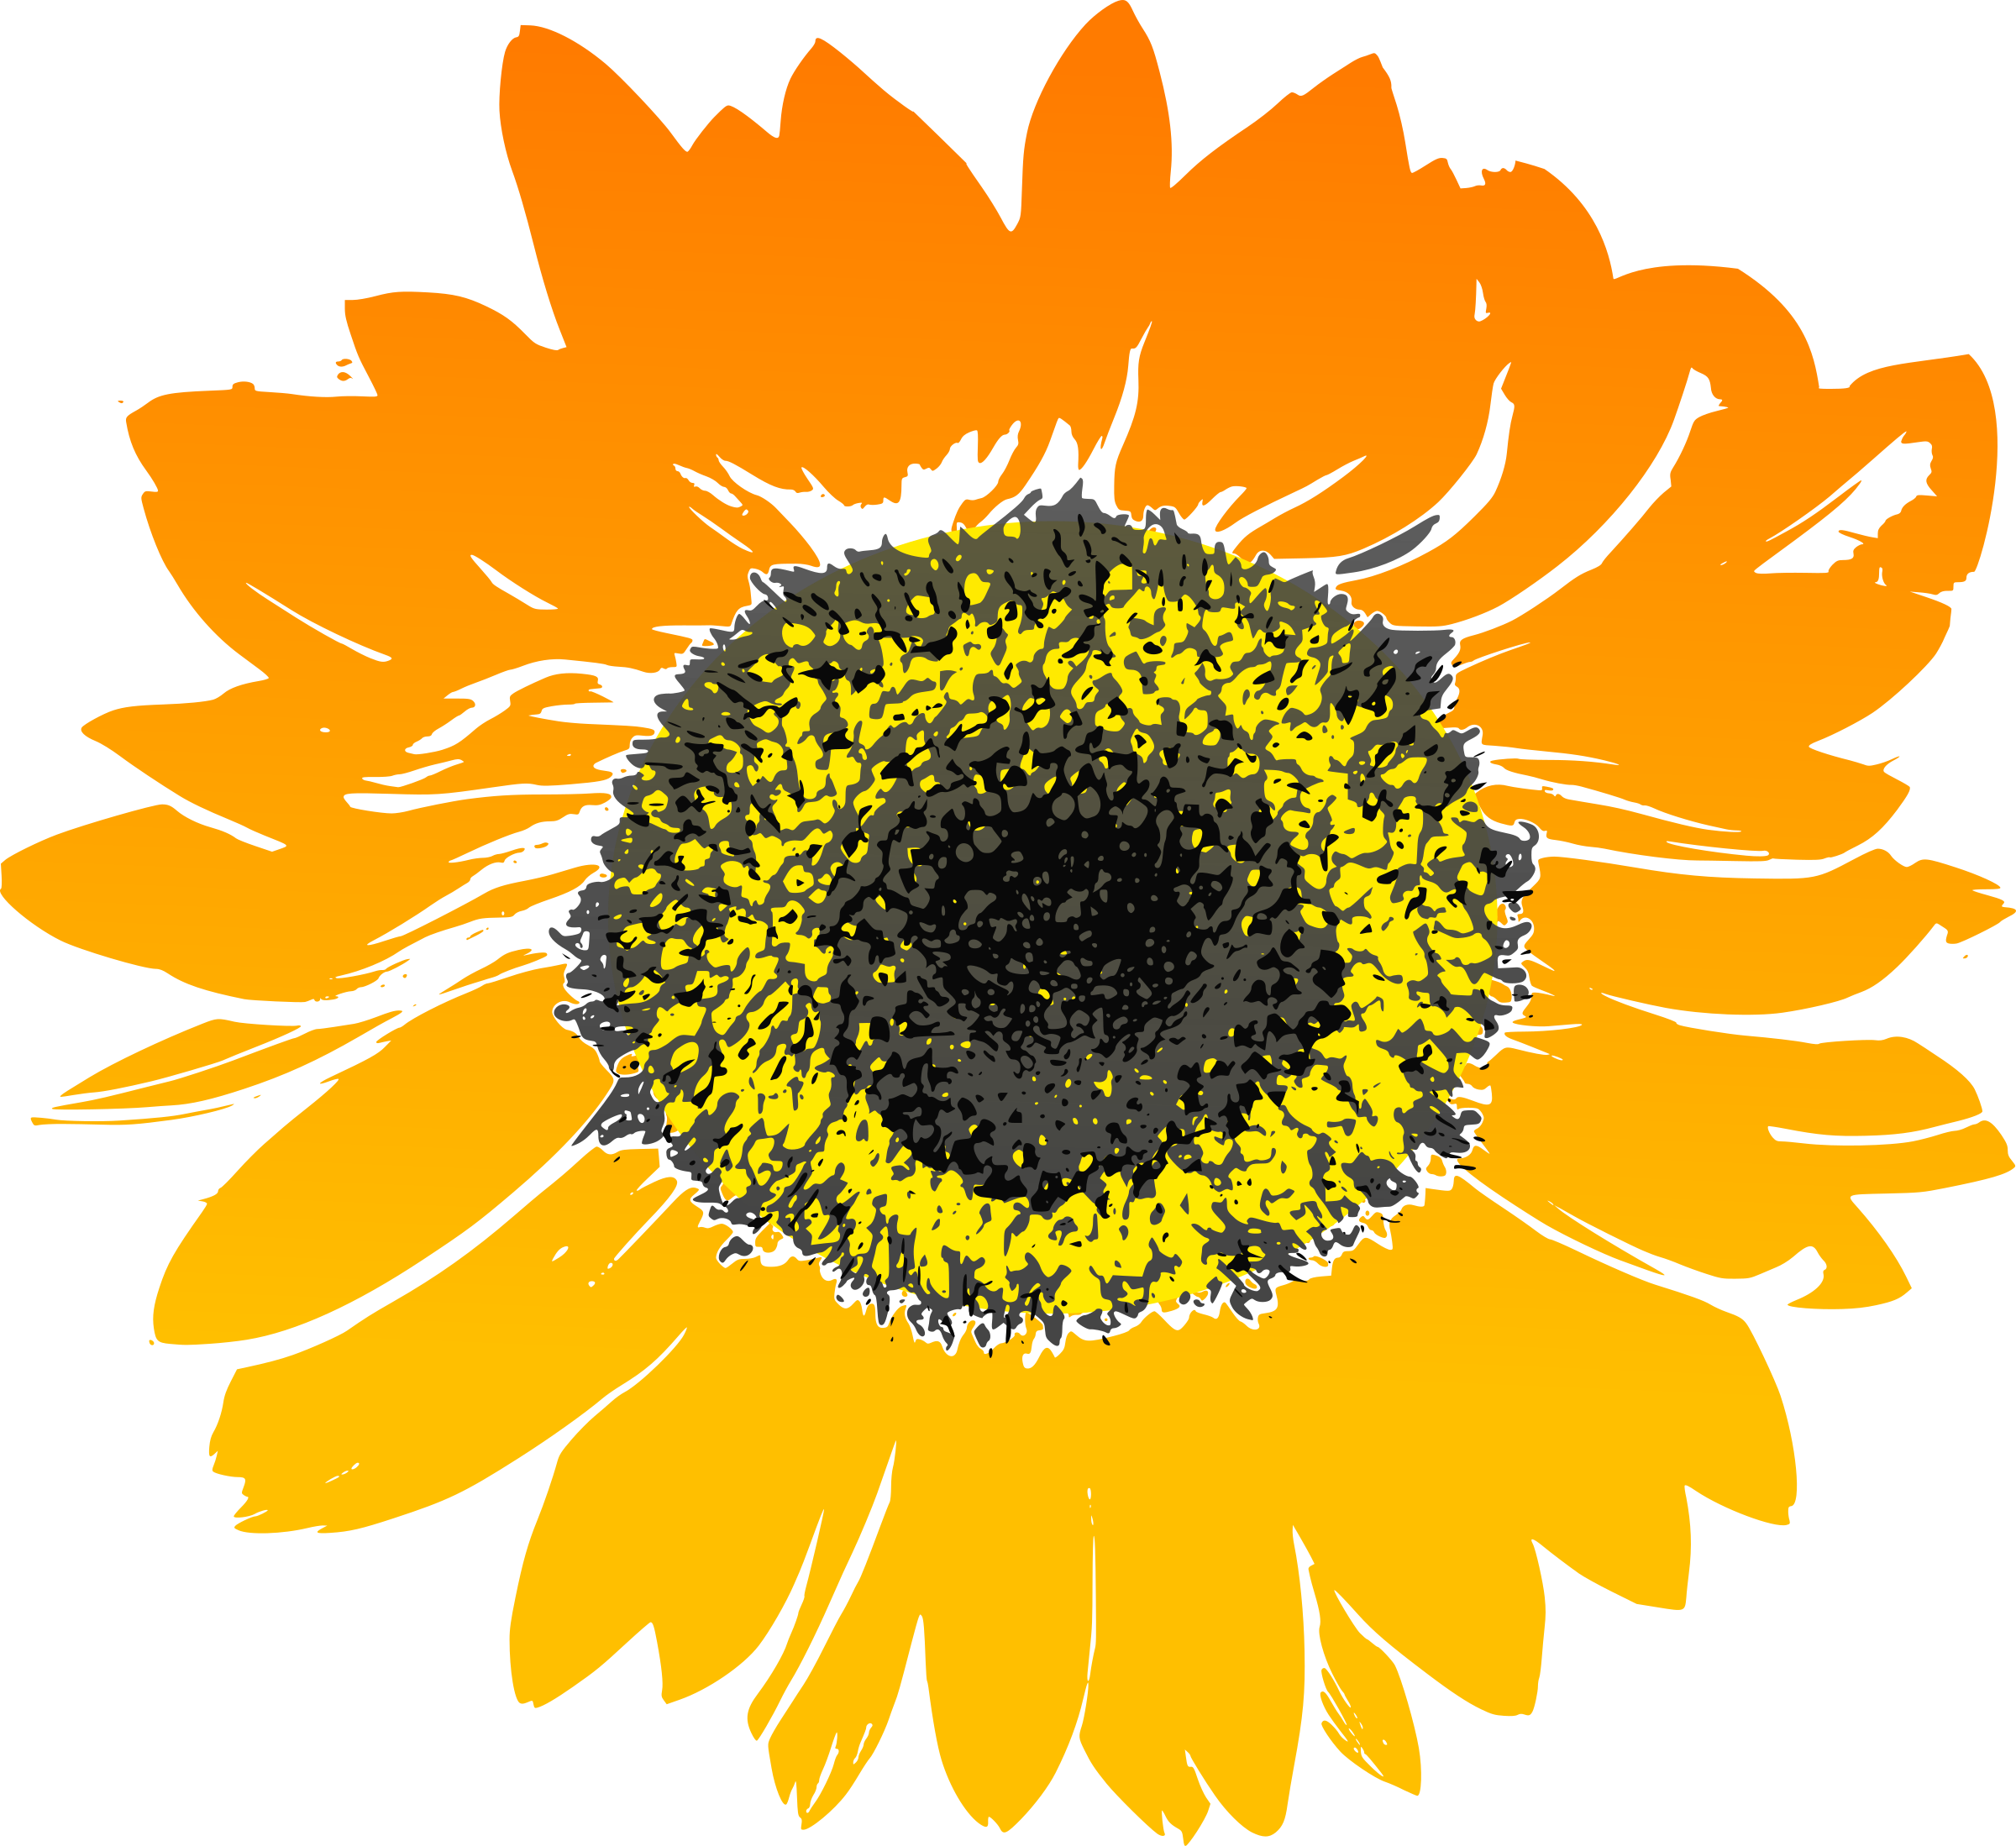 Seed and sun clipart image freeuse Clipart - Sunflower image freeuse